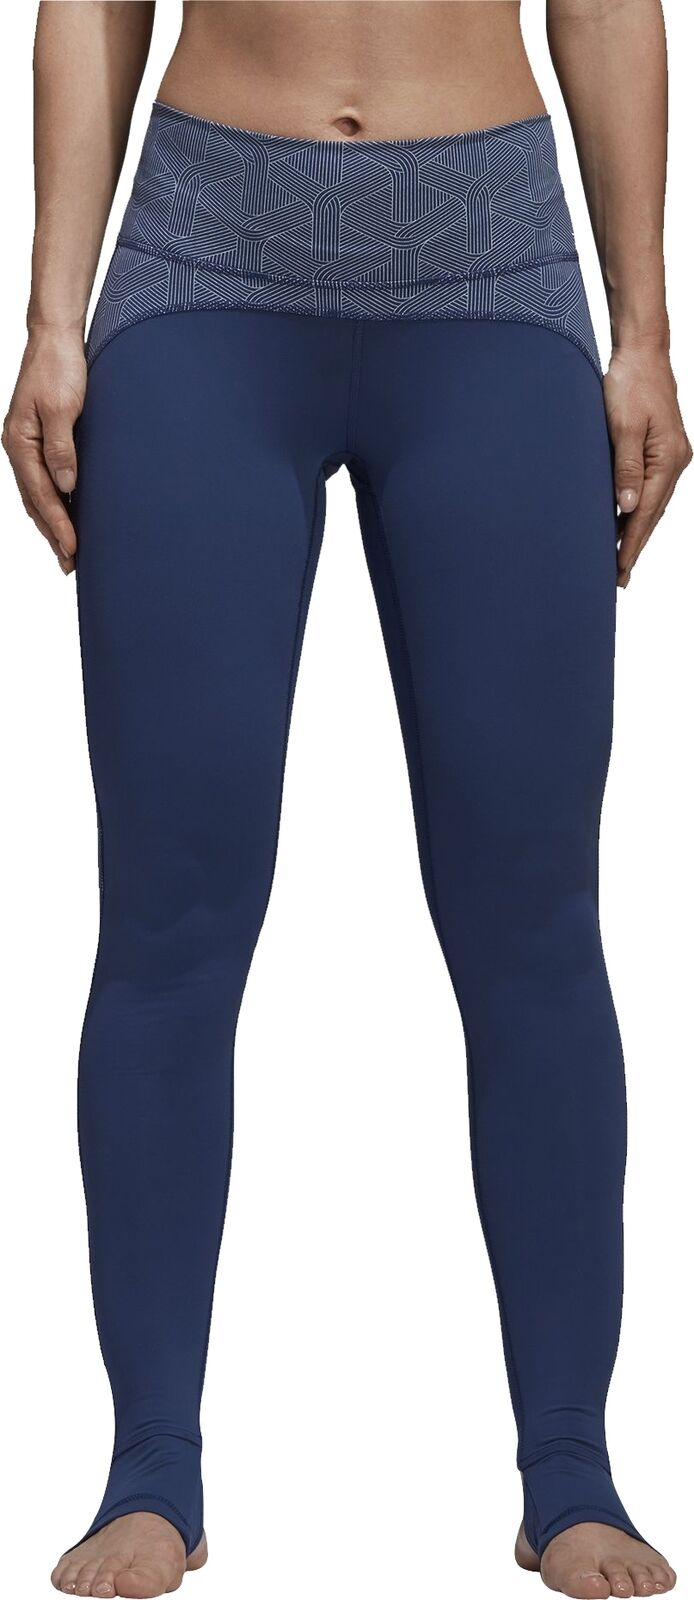 d94522989228e Adidas Believe This High Rise Womens Yoga Tight blueeeeeeeee Long -  ozidbr8357-Activewear Bottoms